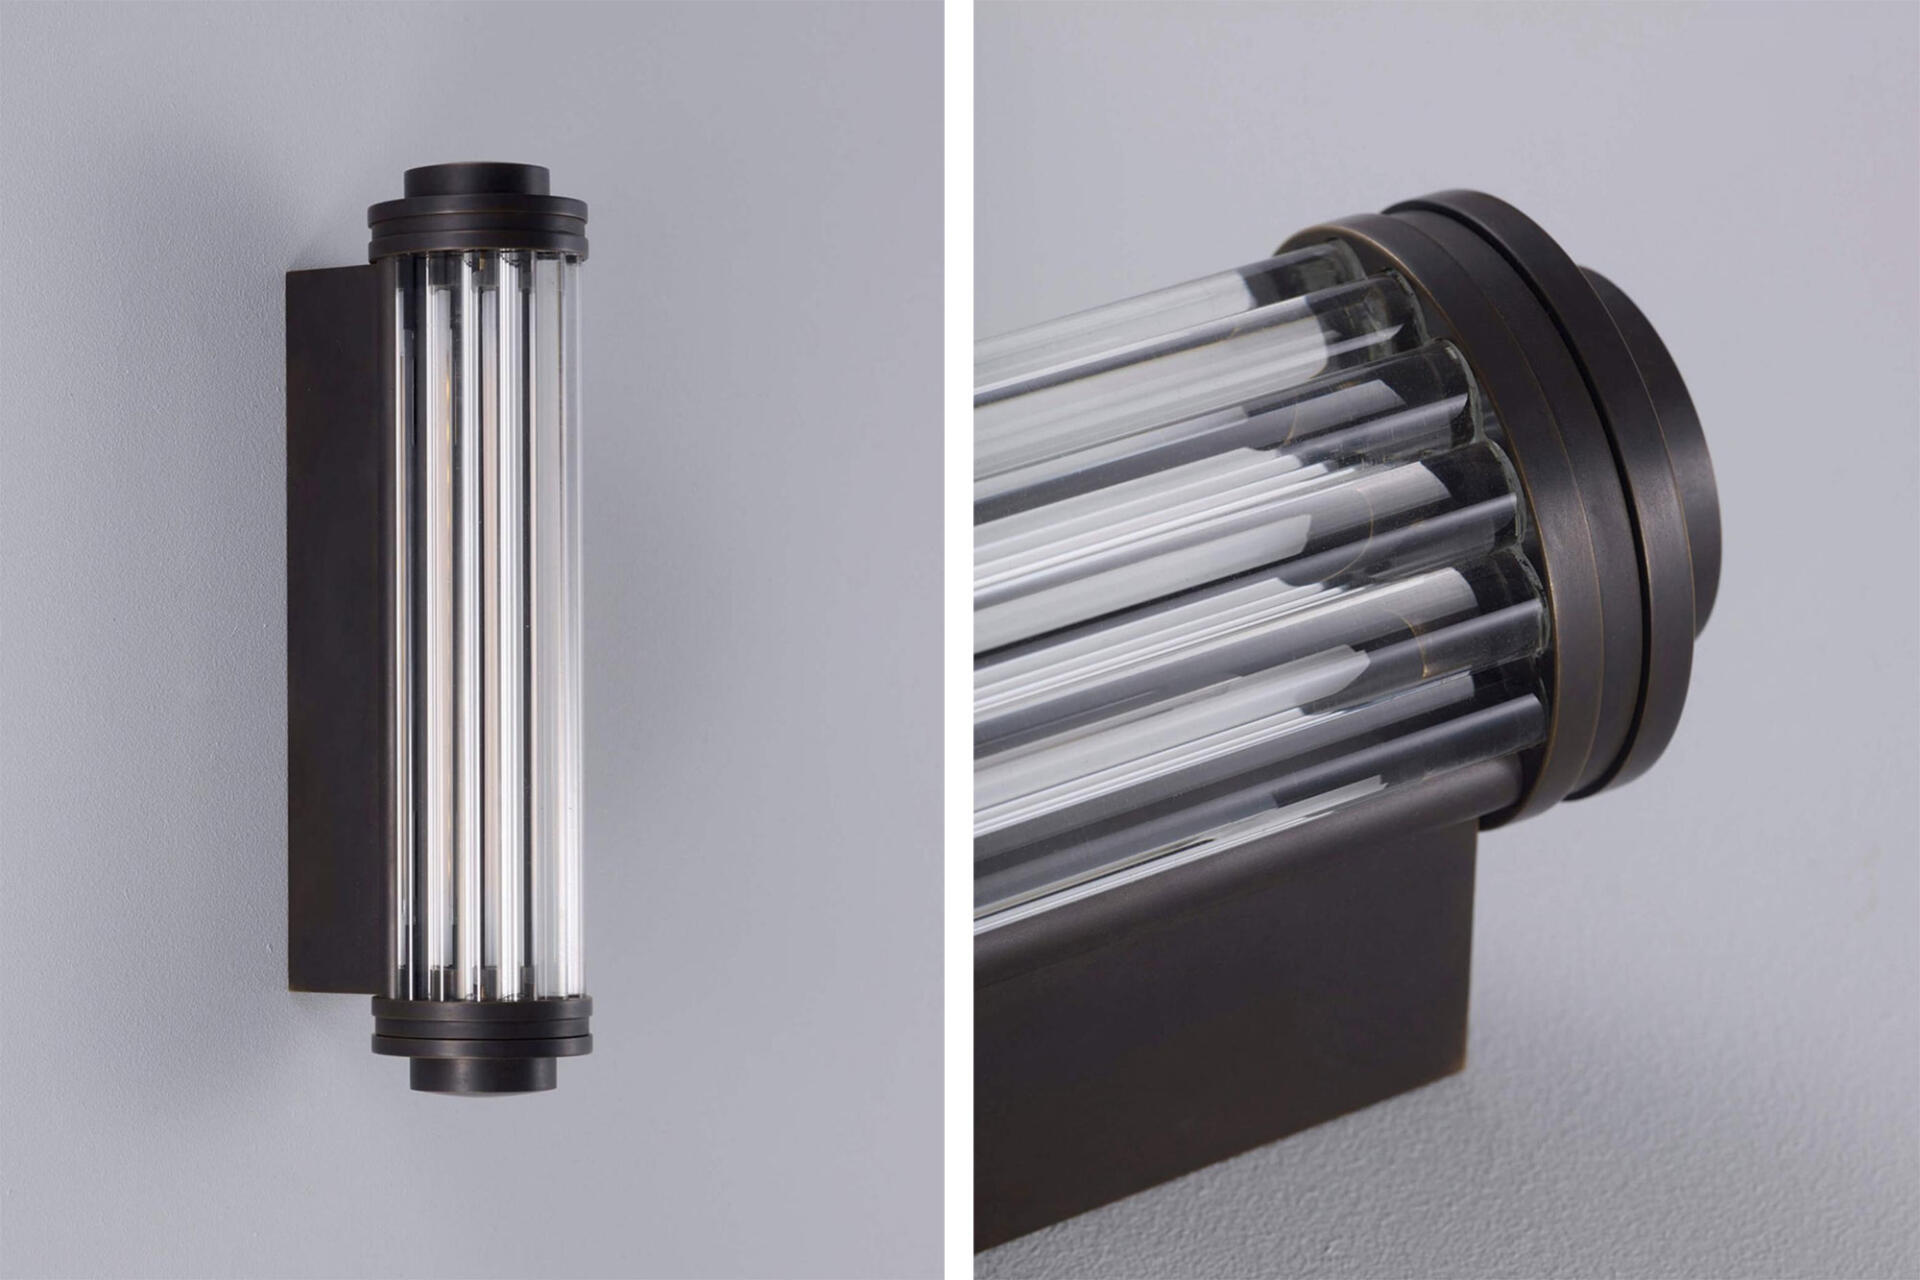 Collier Webb Classic Shot Light featuring glass rods in an Art Deco style